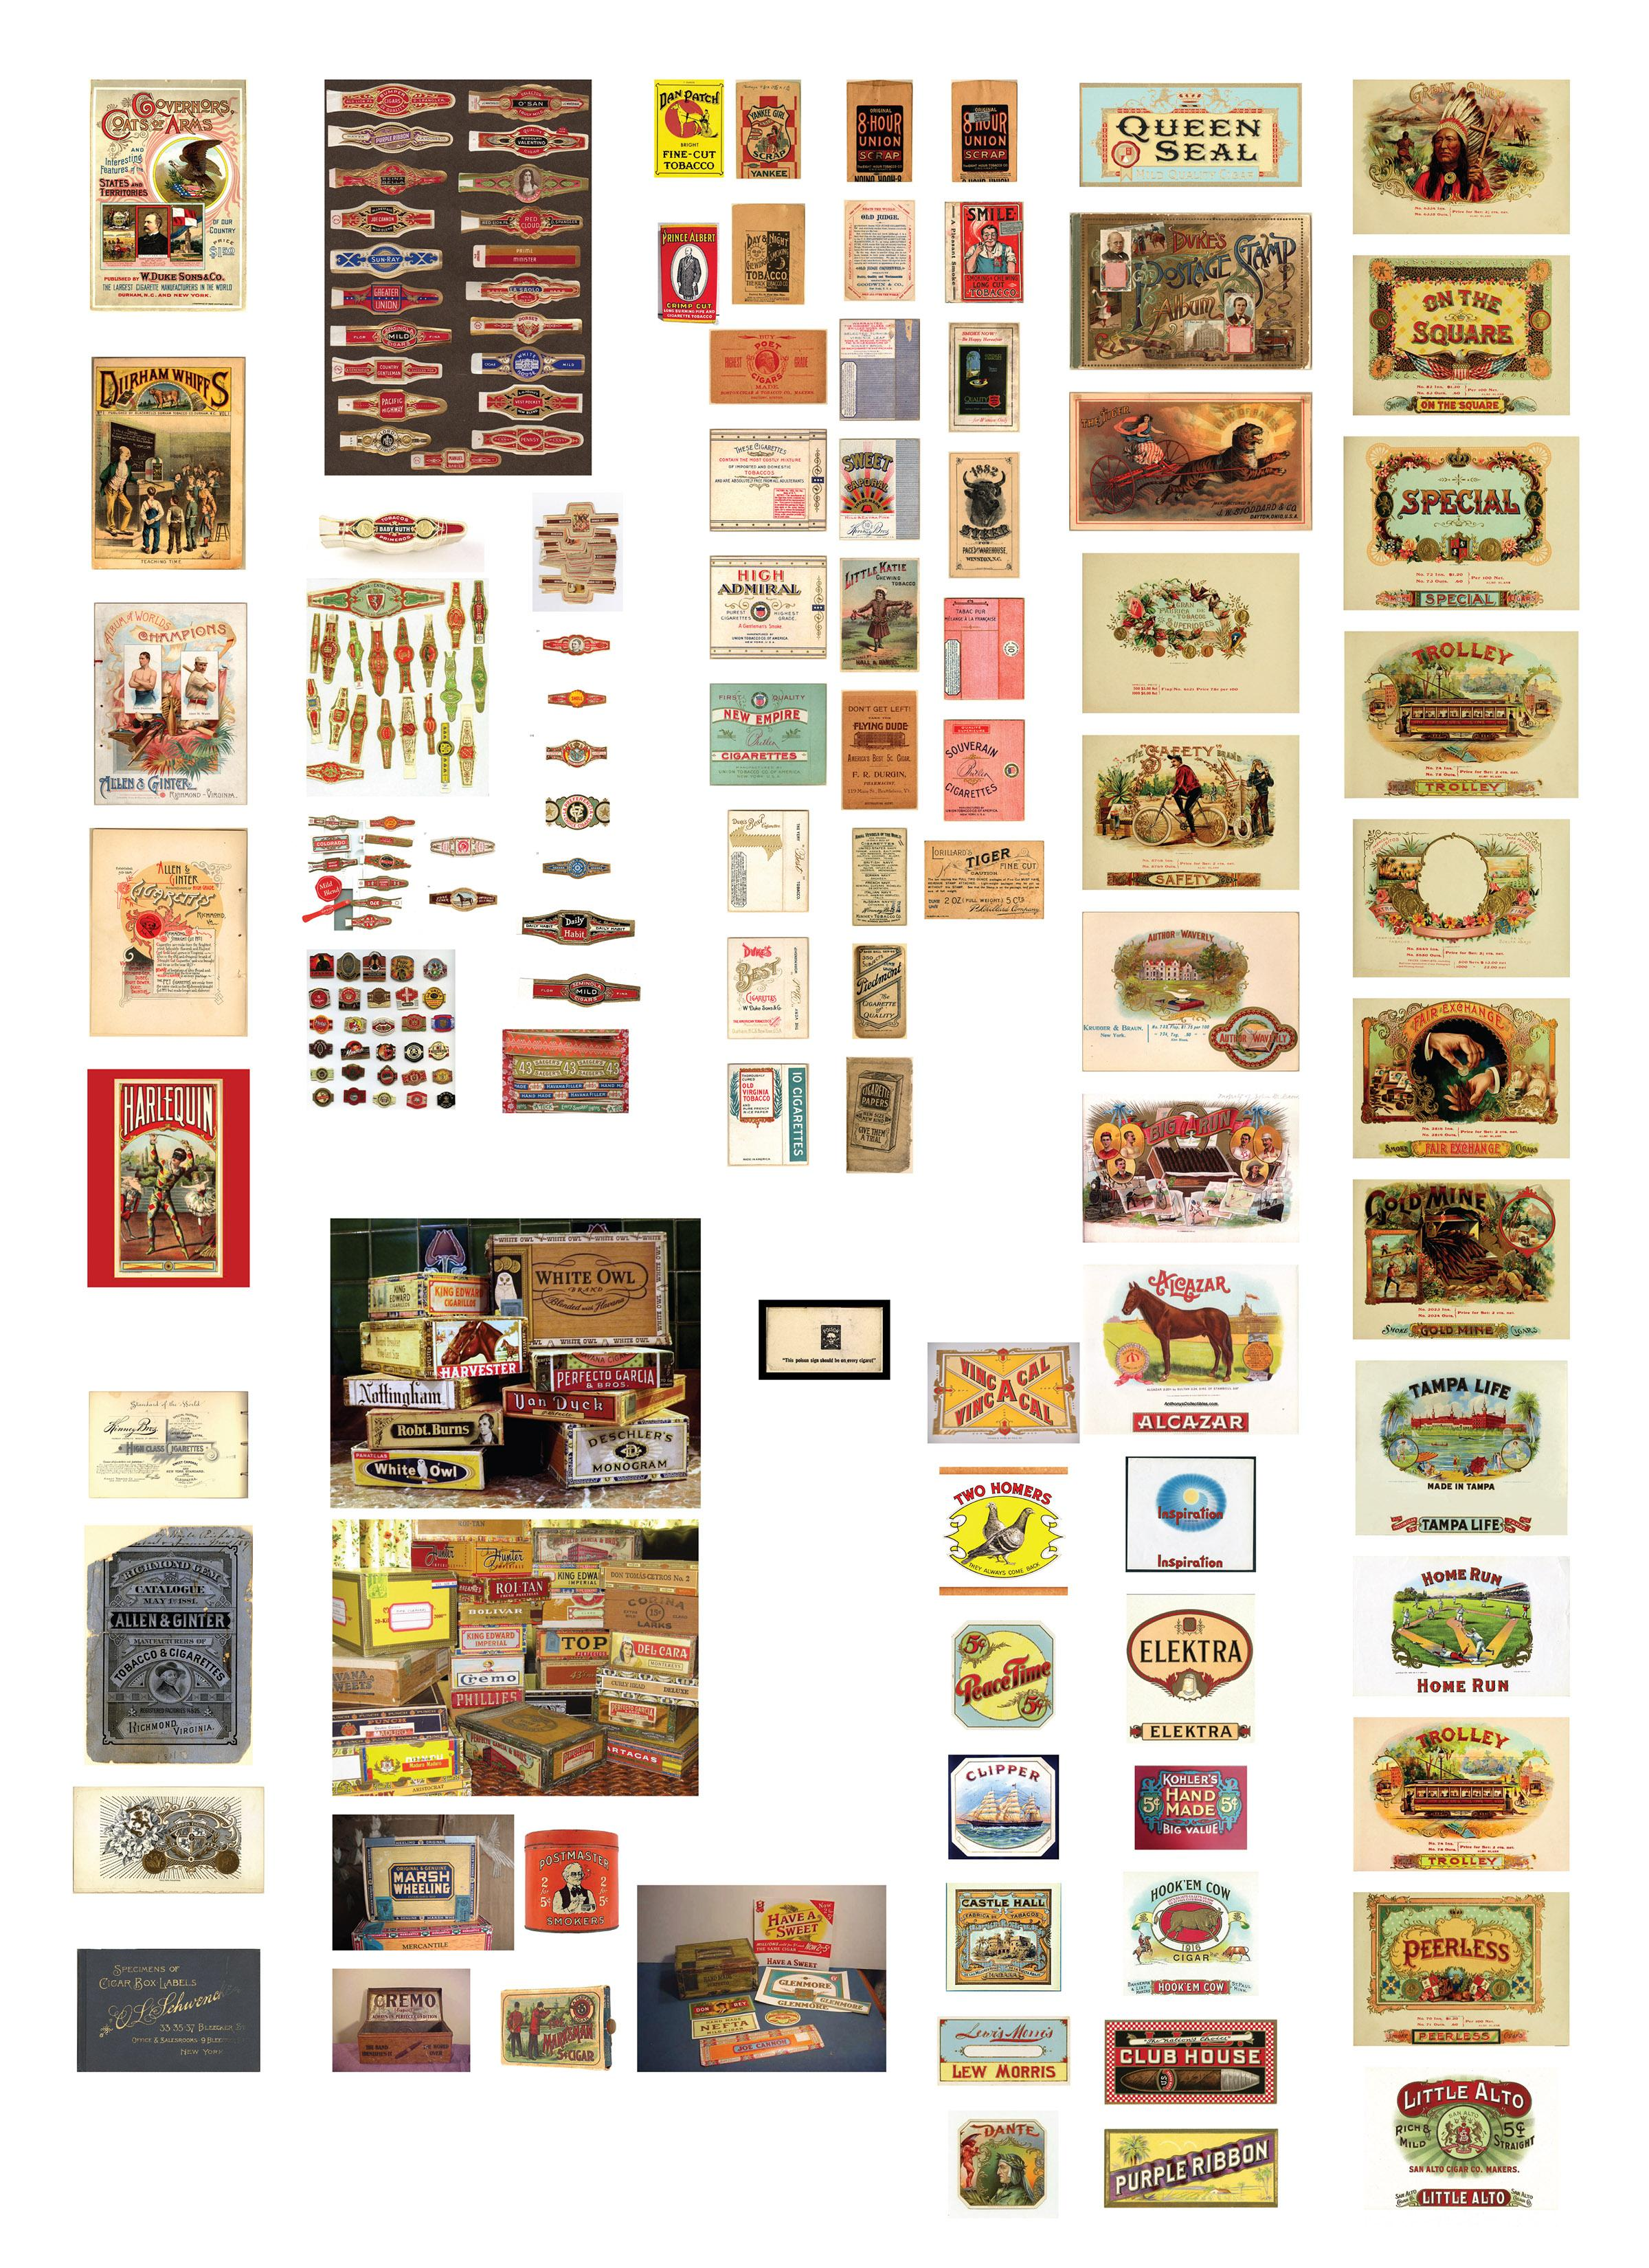 Recompensa Cigars - image 18 - student project